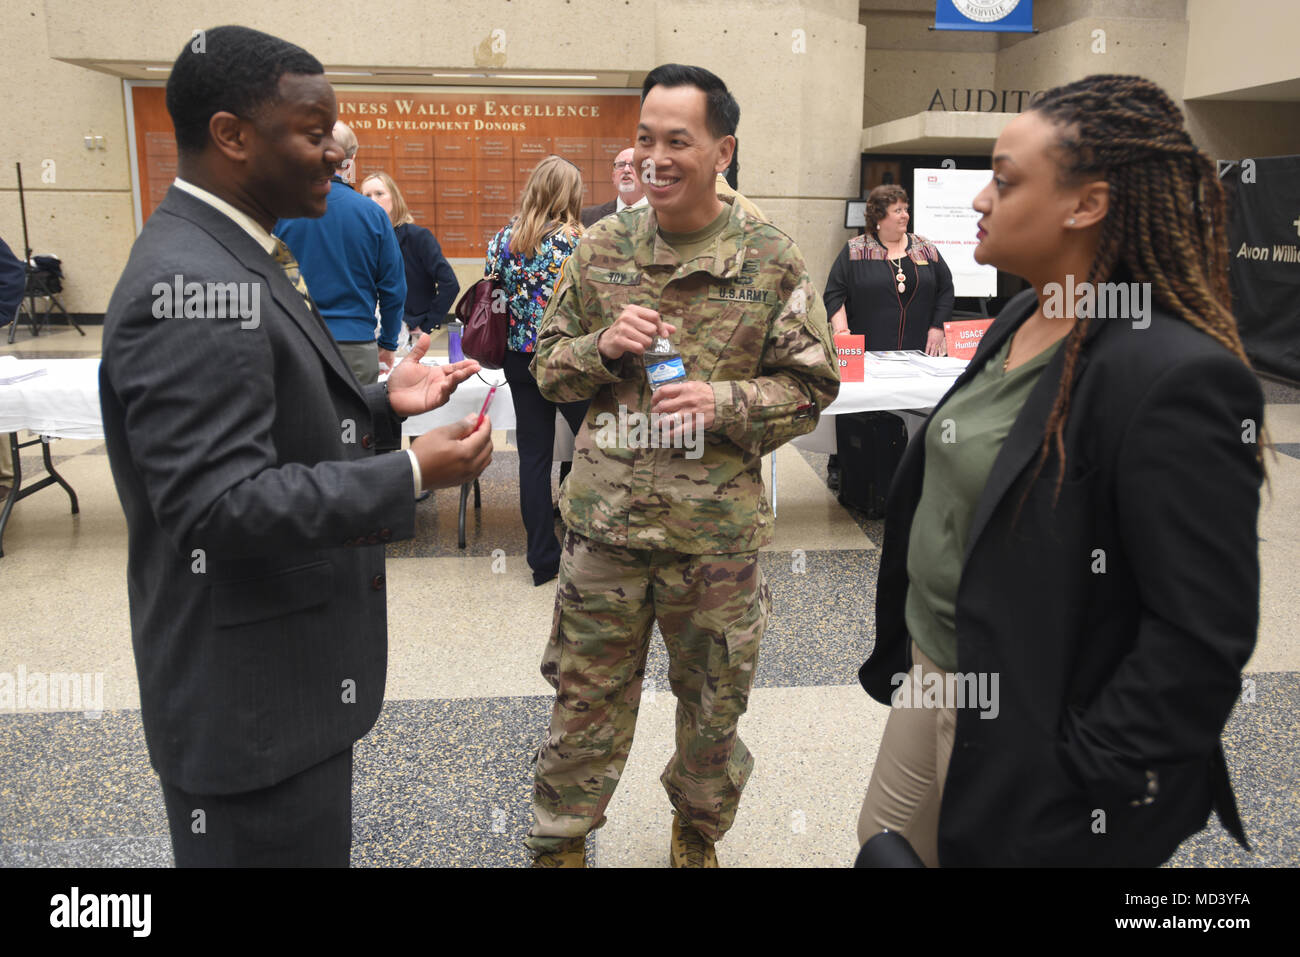 Brig. Gen. Mark Toy, U.S. Army Corps of Engineers Great Lakes and Ohio River Division commander, meets with Christopher Ballard, vice president of operations for Simms Building Group, and Endia Javon, administrative assistant and project administrator for Simms Building Group, during the Business Opportunities Open House, also known as 'BOOH,' at Tennessee State University in Nashville, Tenn., March 15, 2018. (USACE photo by Leon Roberts) - Stock Image